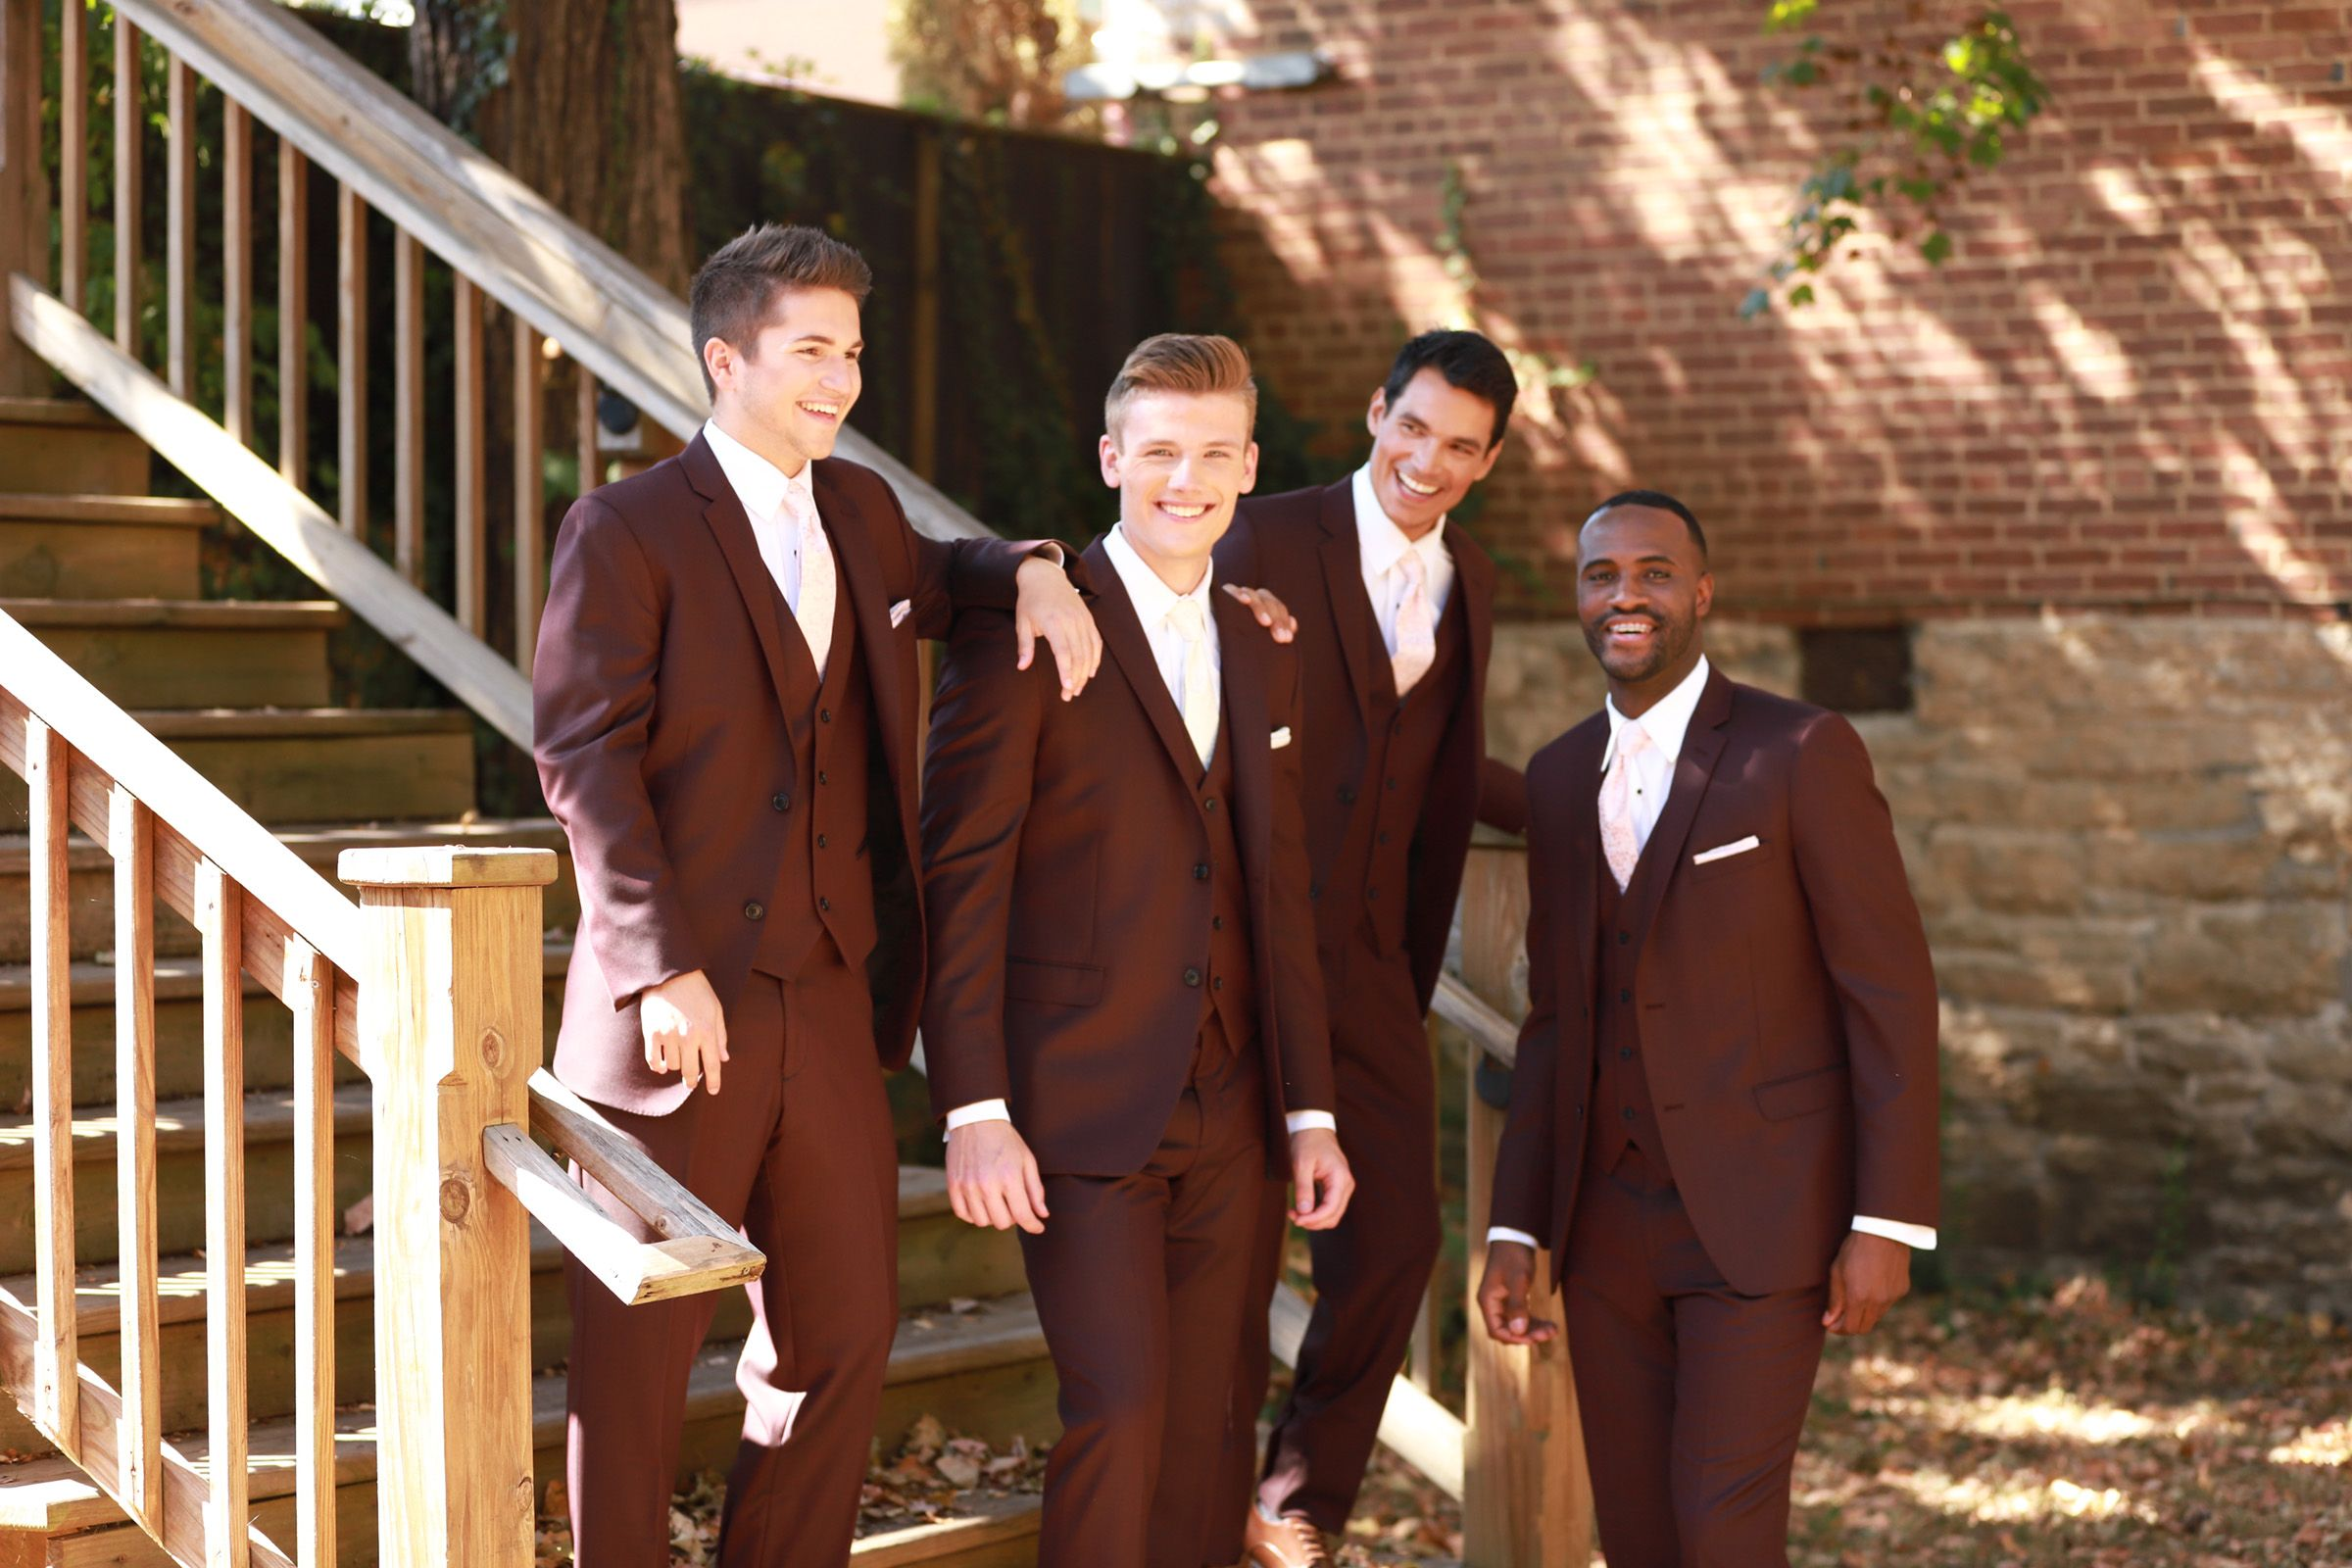 All the guys will love the Burgundy Suit Rental for your